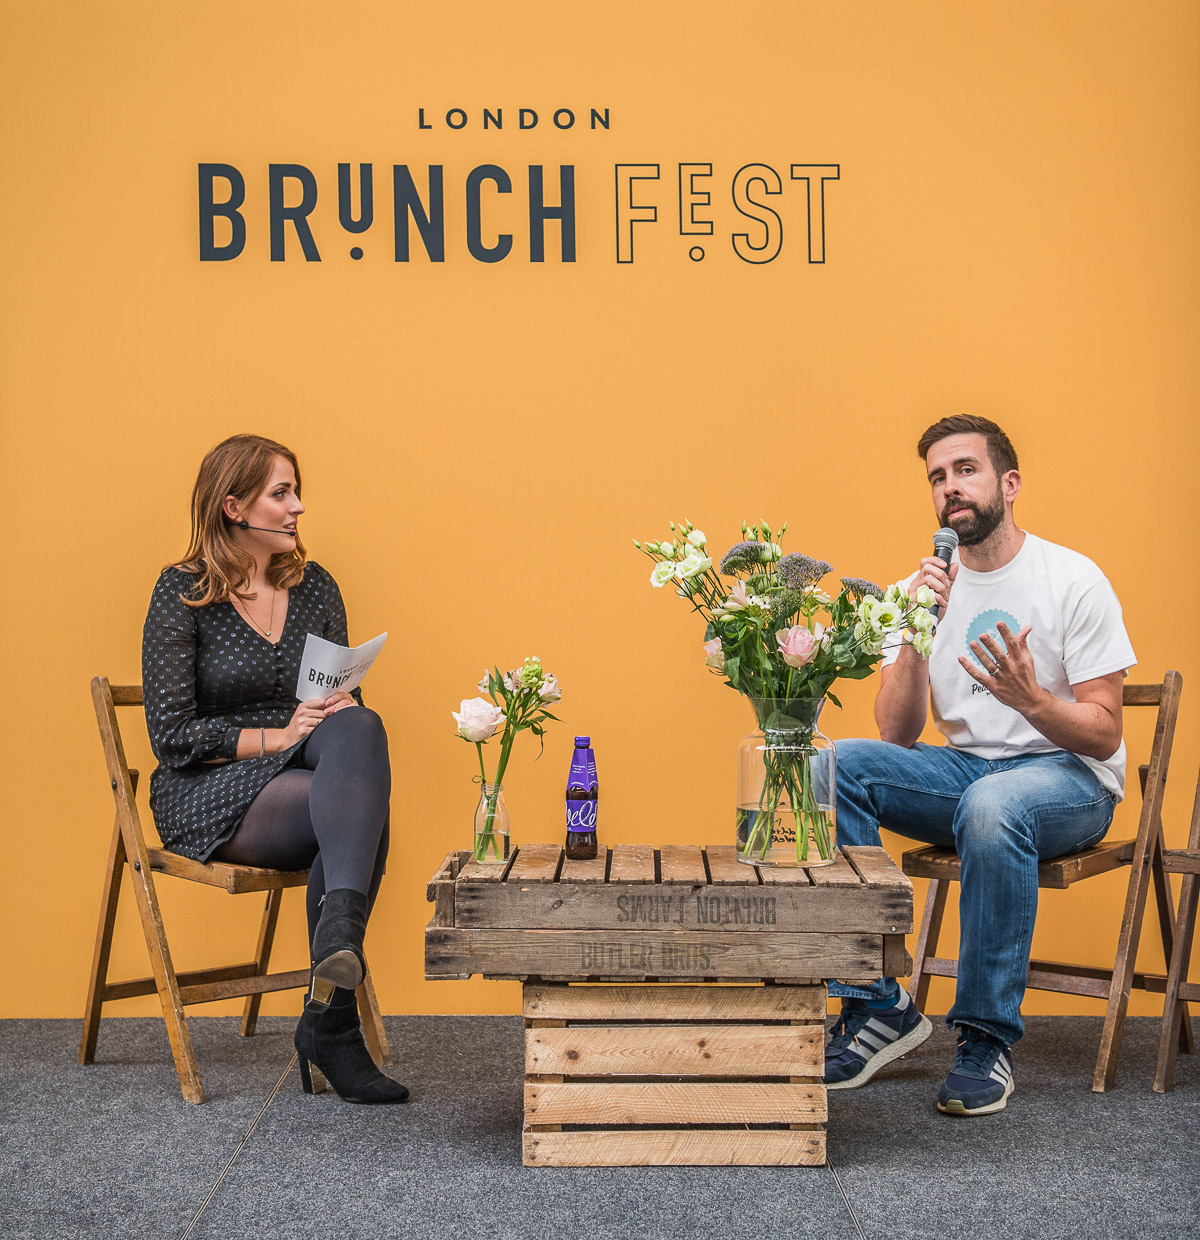 Talks & Workshops - We've got a fantastic line up of brunch related talks, panel discussions and hands on workshops for Brunch Fest 2019! You can check out the full line up of talks here.